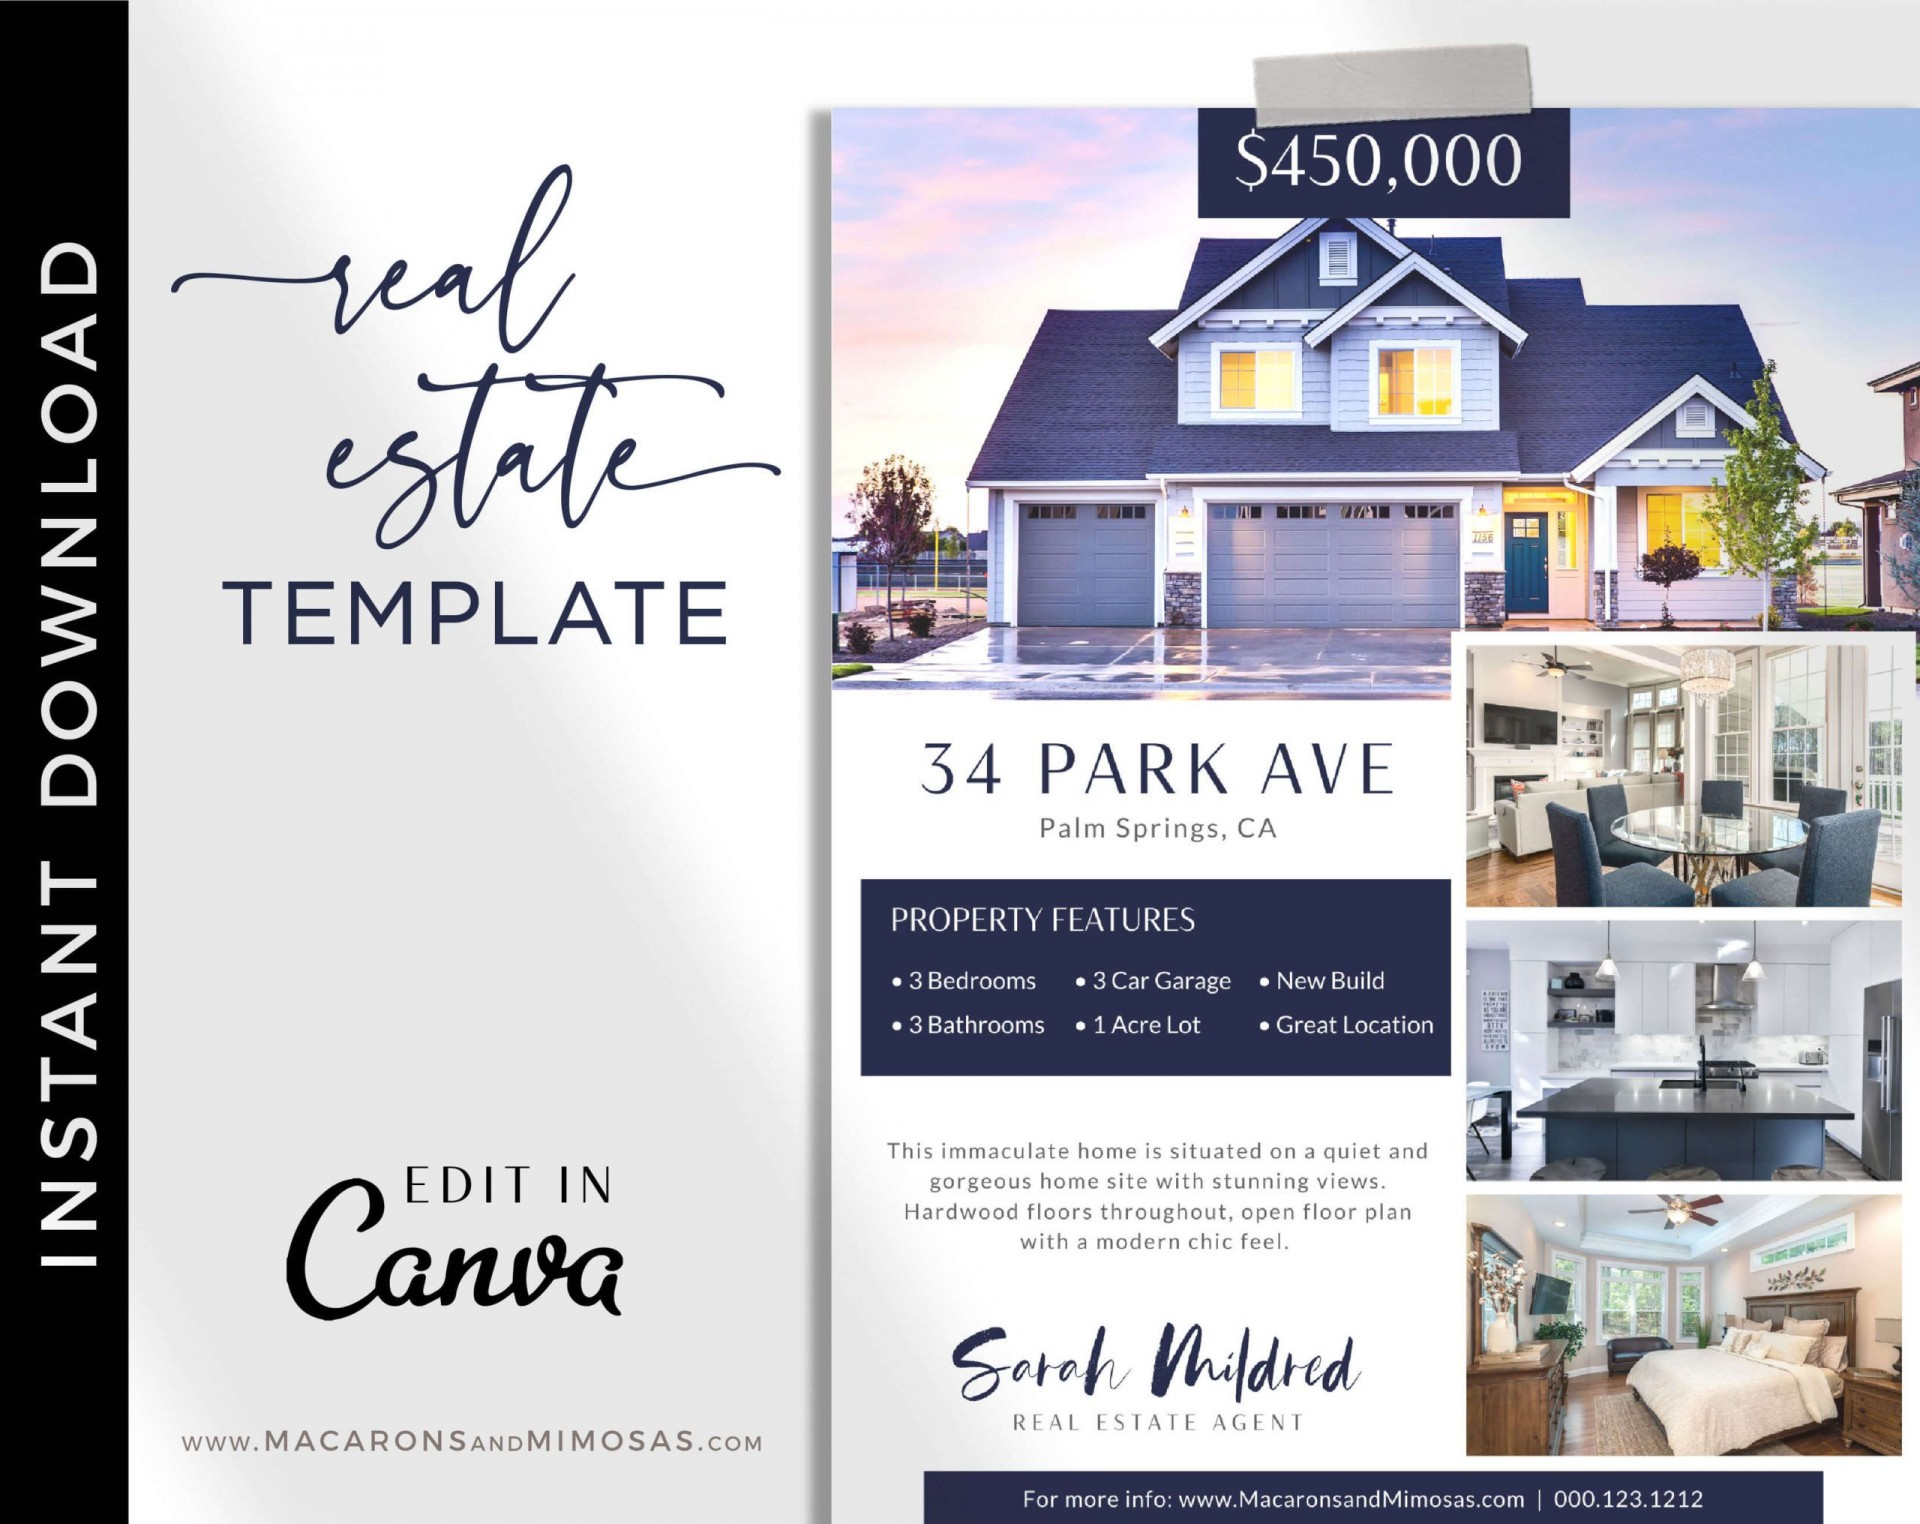 005 Beautiful House For Sale Flyer Template Sample  Free Real Estate Example By Owner1920